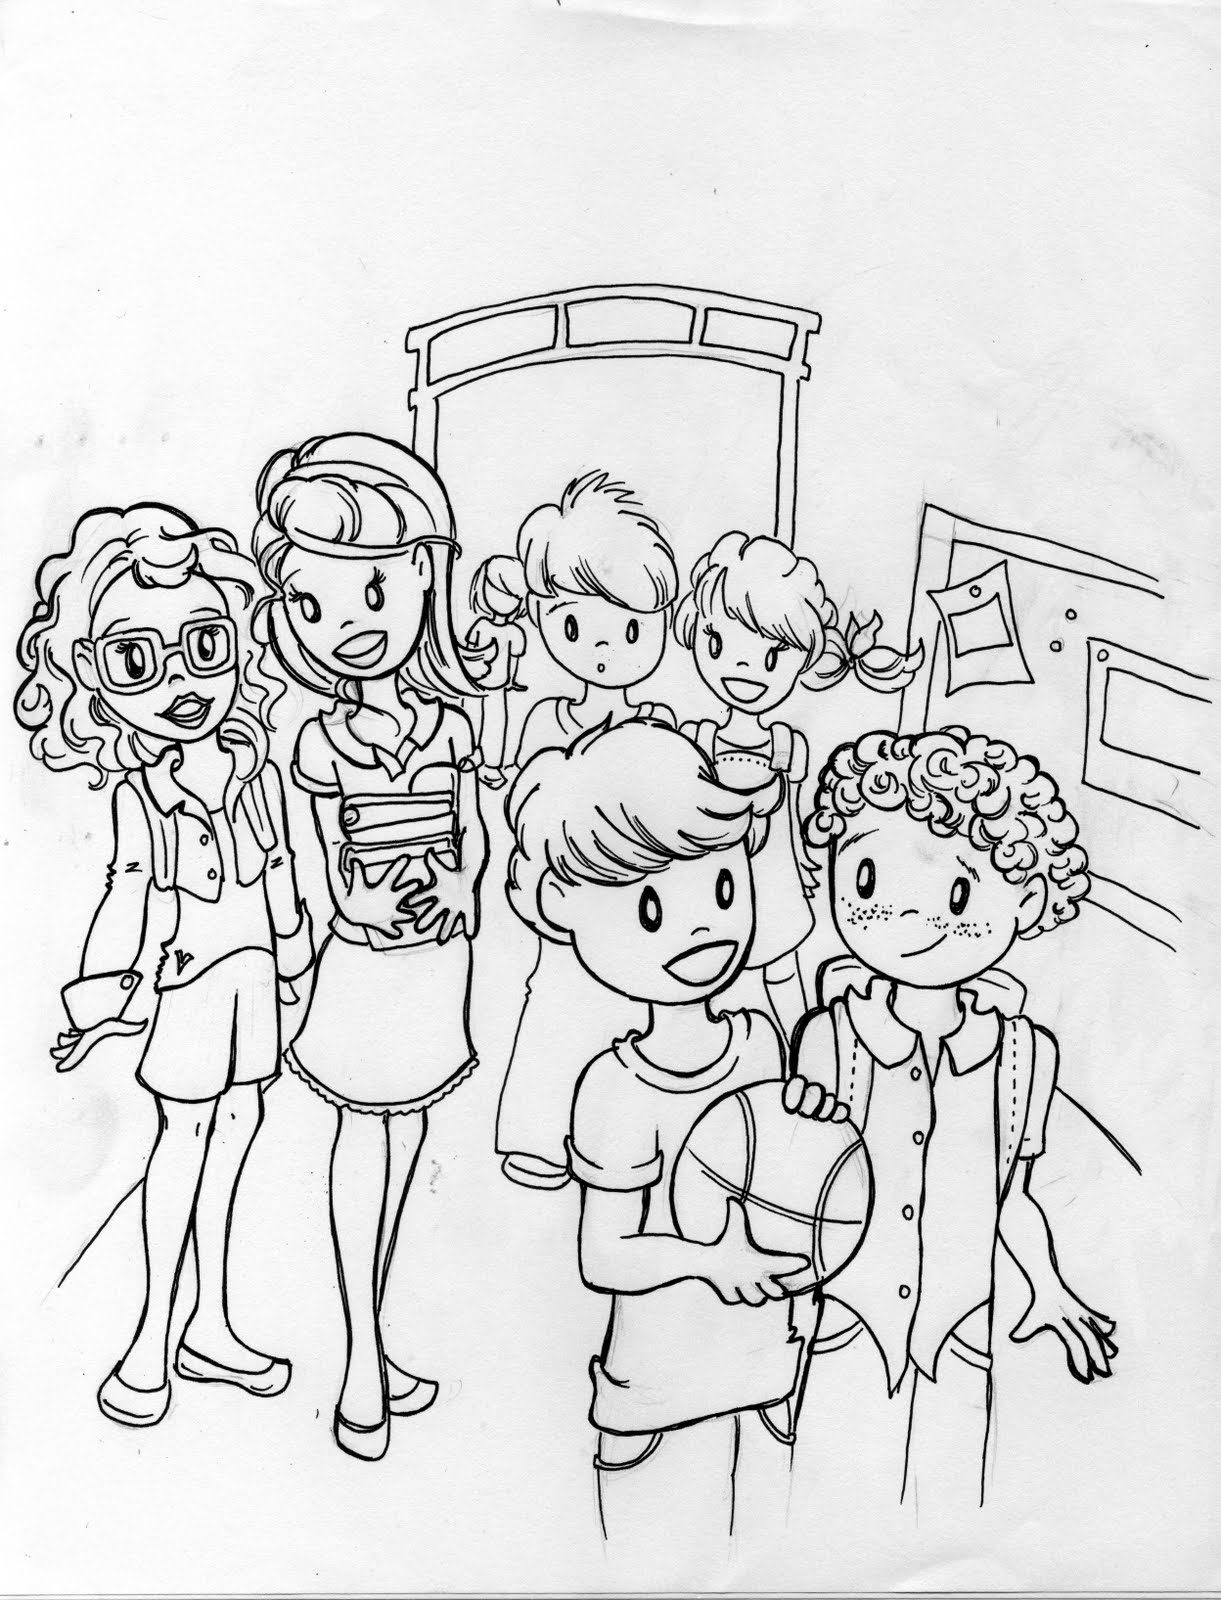 Everybody illustrated back to school for 5th grade coloring pages